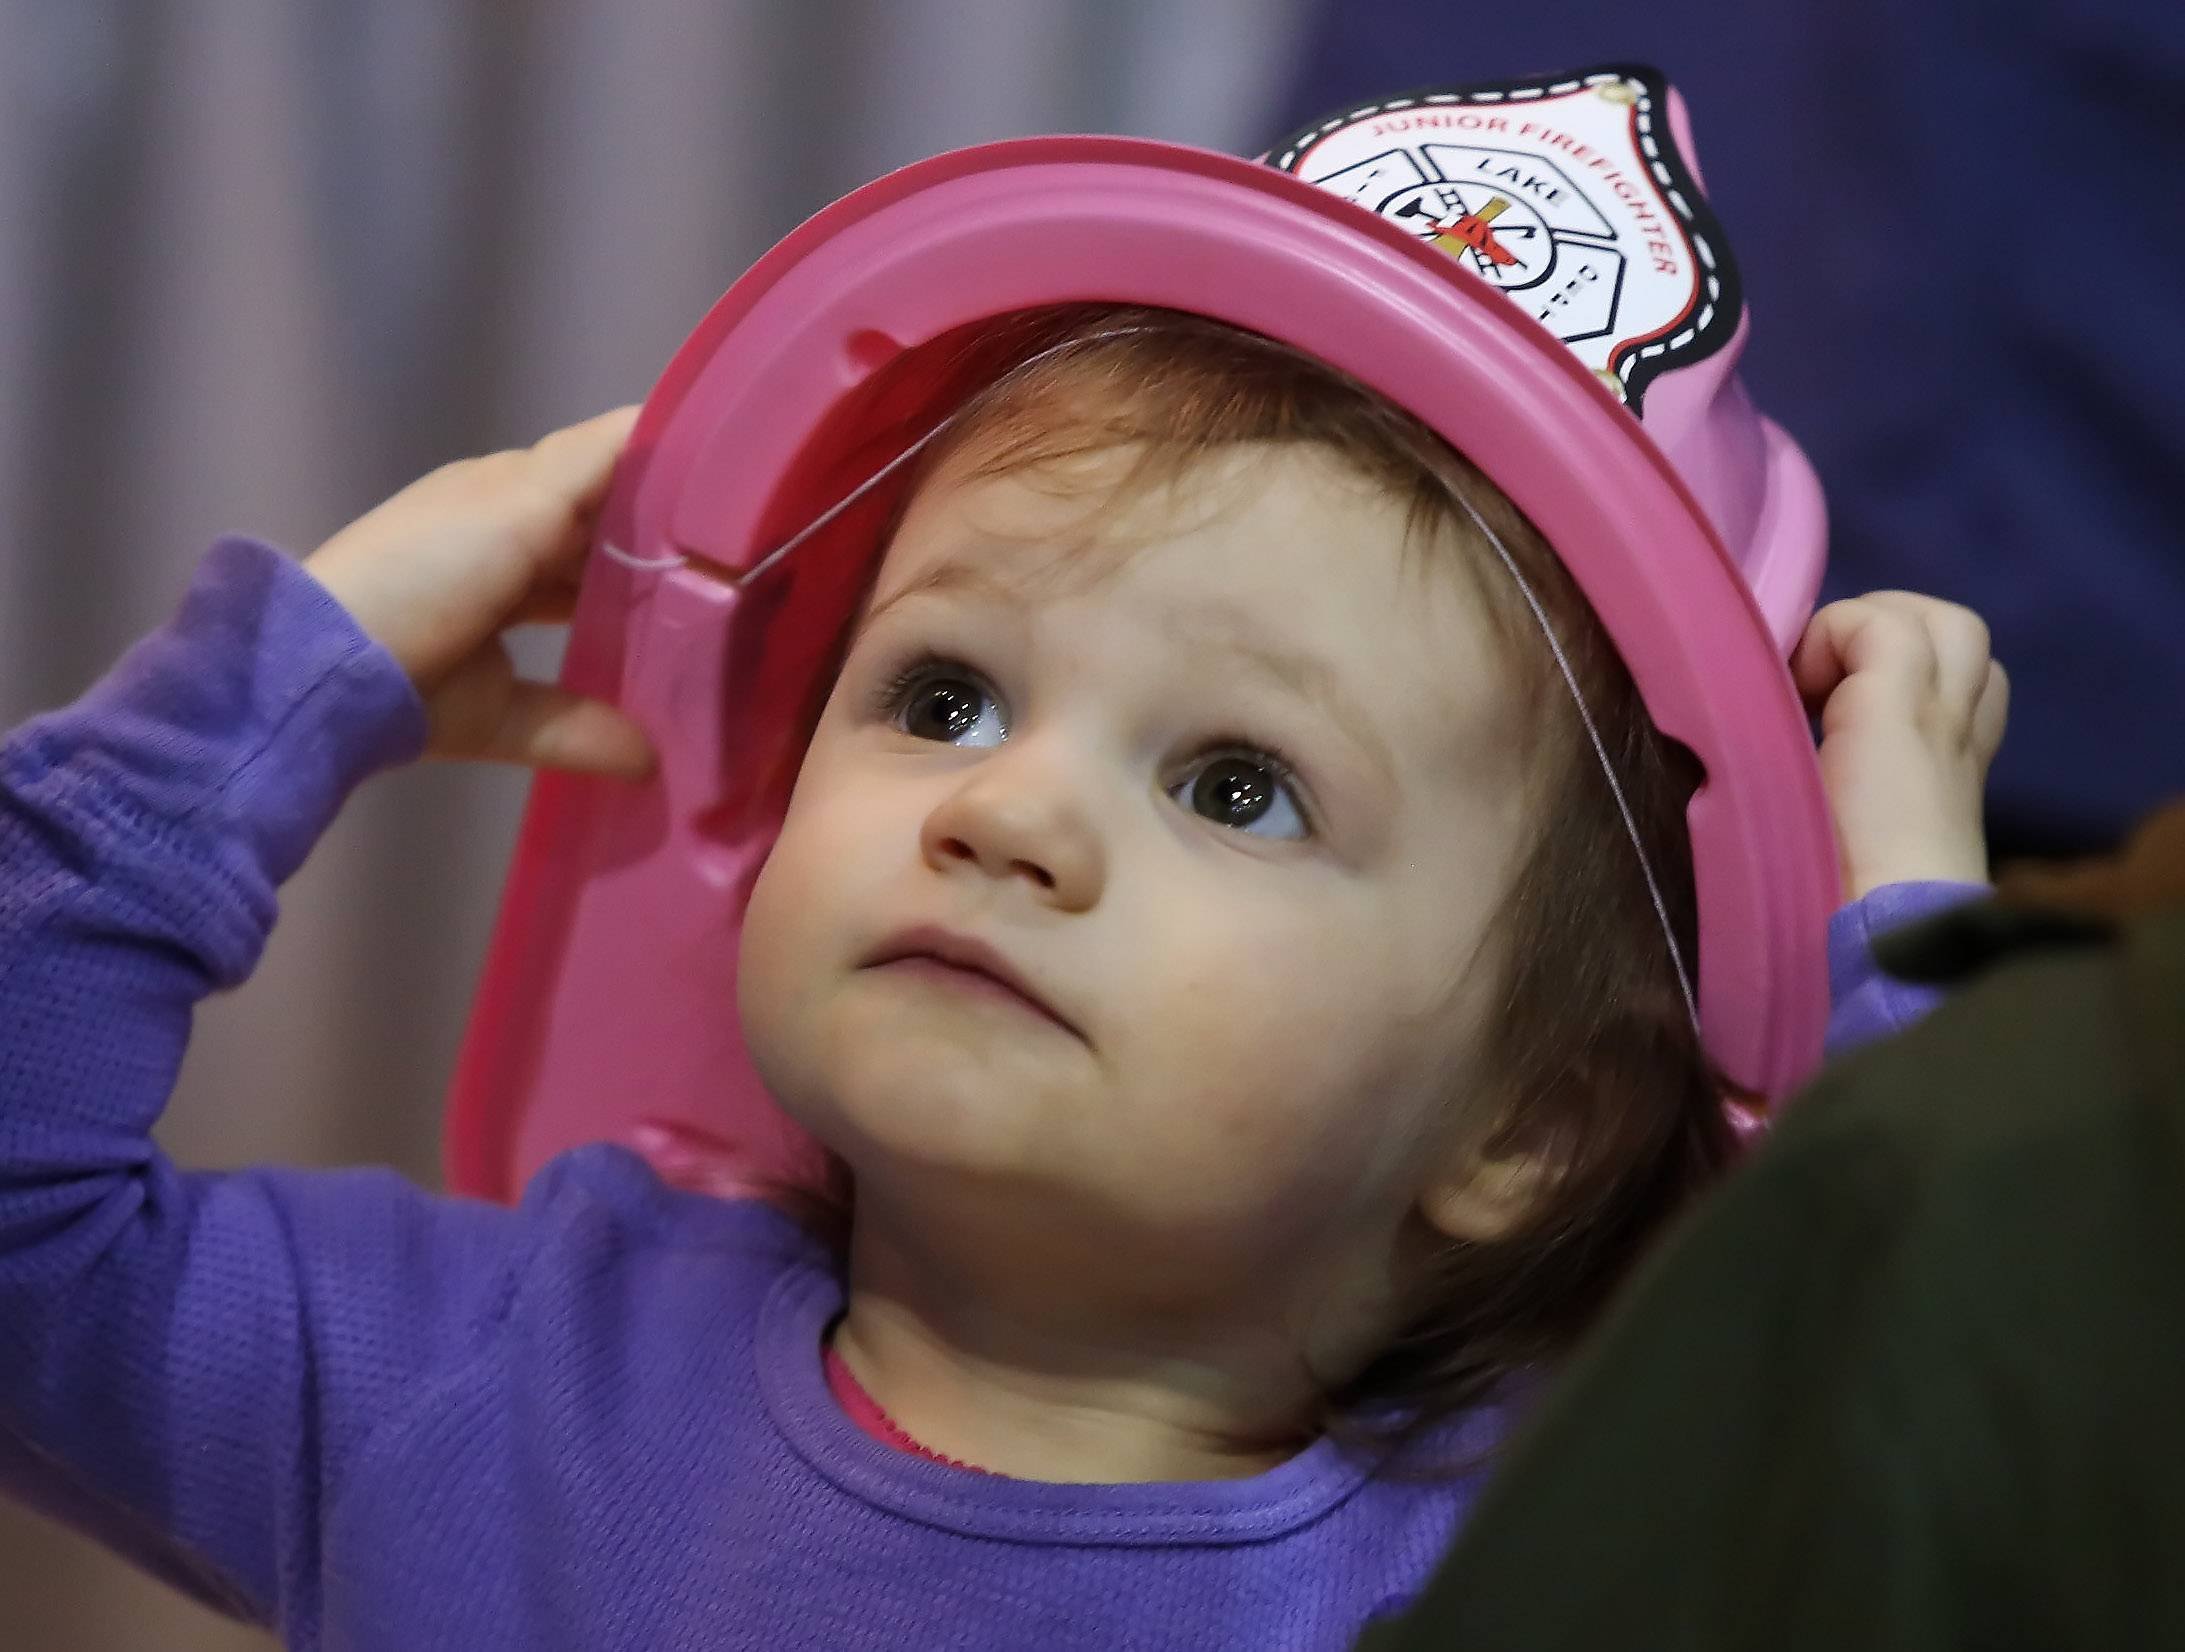 Lexi Sparkman, 2, of Round Lake Beach wears a new Lake Villa Fire Department hat she received during SpringFest Expo 2015 on Sunday at Lakes Community High School in Lake Villa. The 12th annual event was sponsored by the Lindenhurst-Lake Villa Chamber of Commerce with 85 businesses participating.